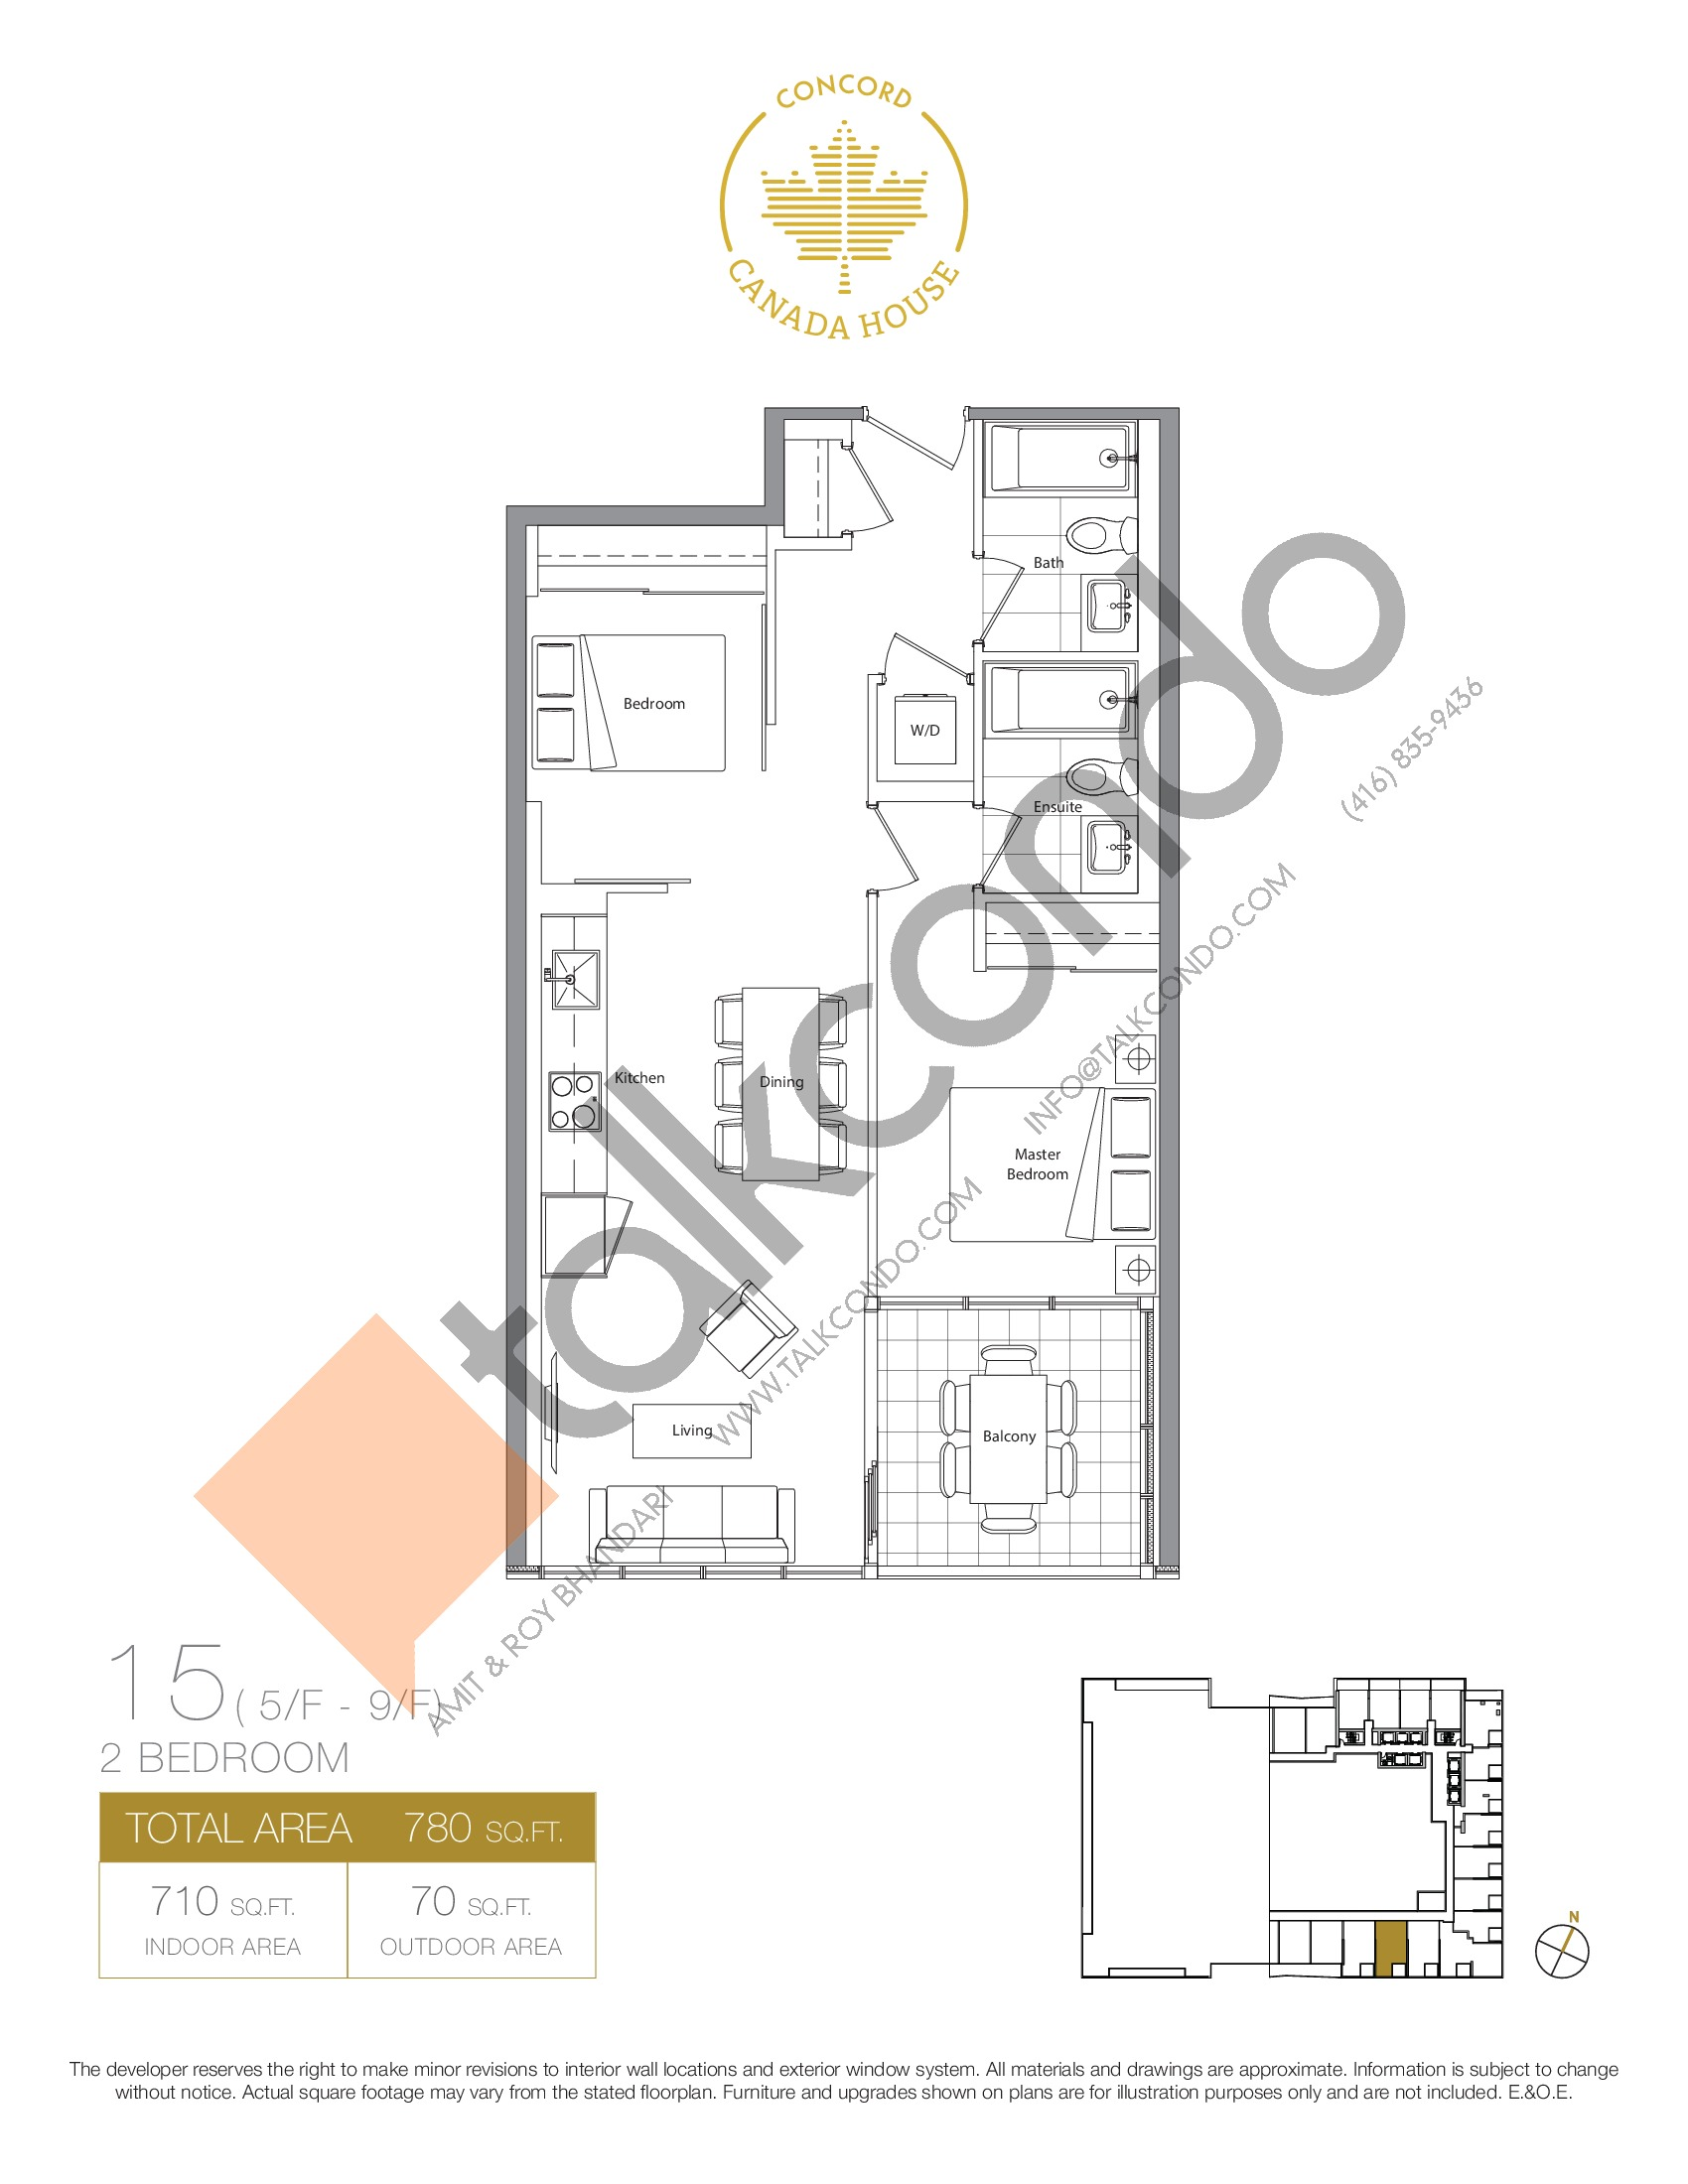 15 - East Tower Floor Plan at Concord Canada House Condos - 710 sq.ft